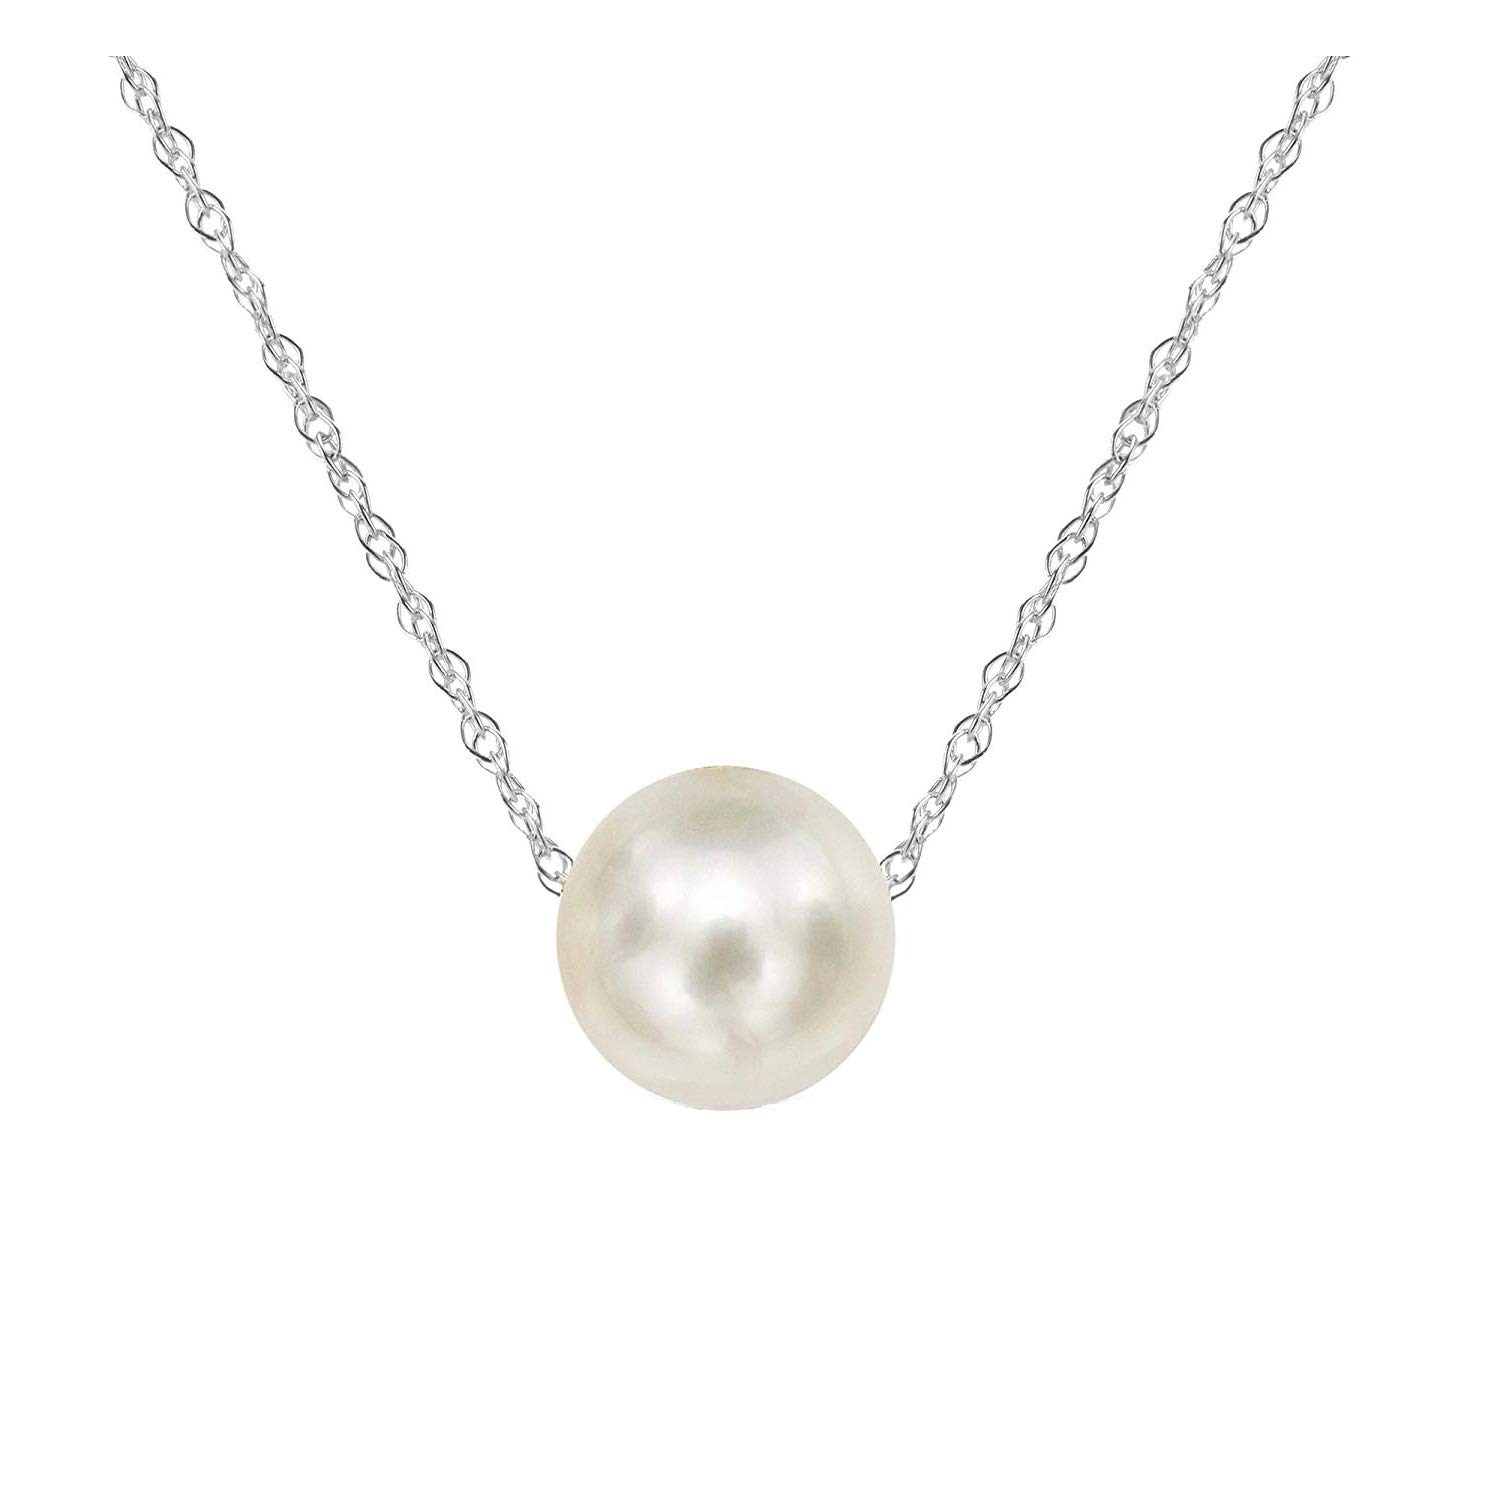 3d7e991625fef Amelery Pearl Necklace Silver White Simulated Single Pendant Pearl 9-10mm  925 Solid Sterling Silver Singapore Chain 18'' Necklaces for Women